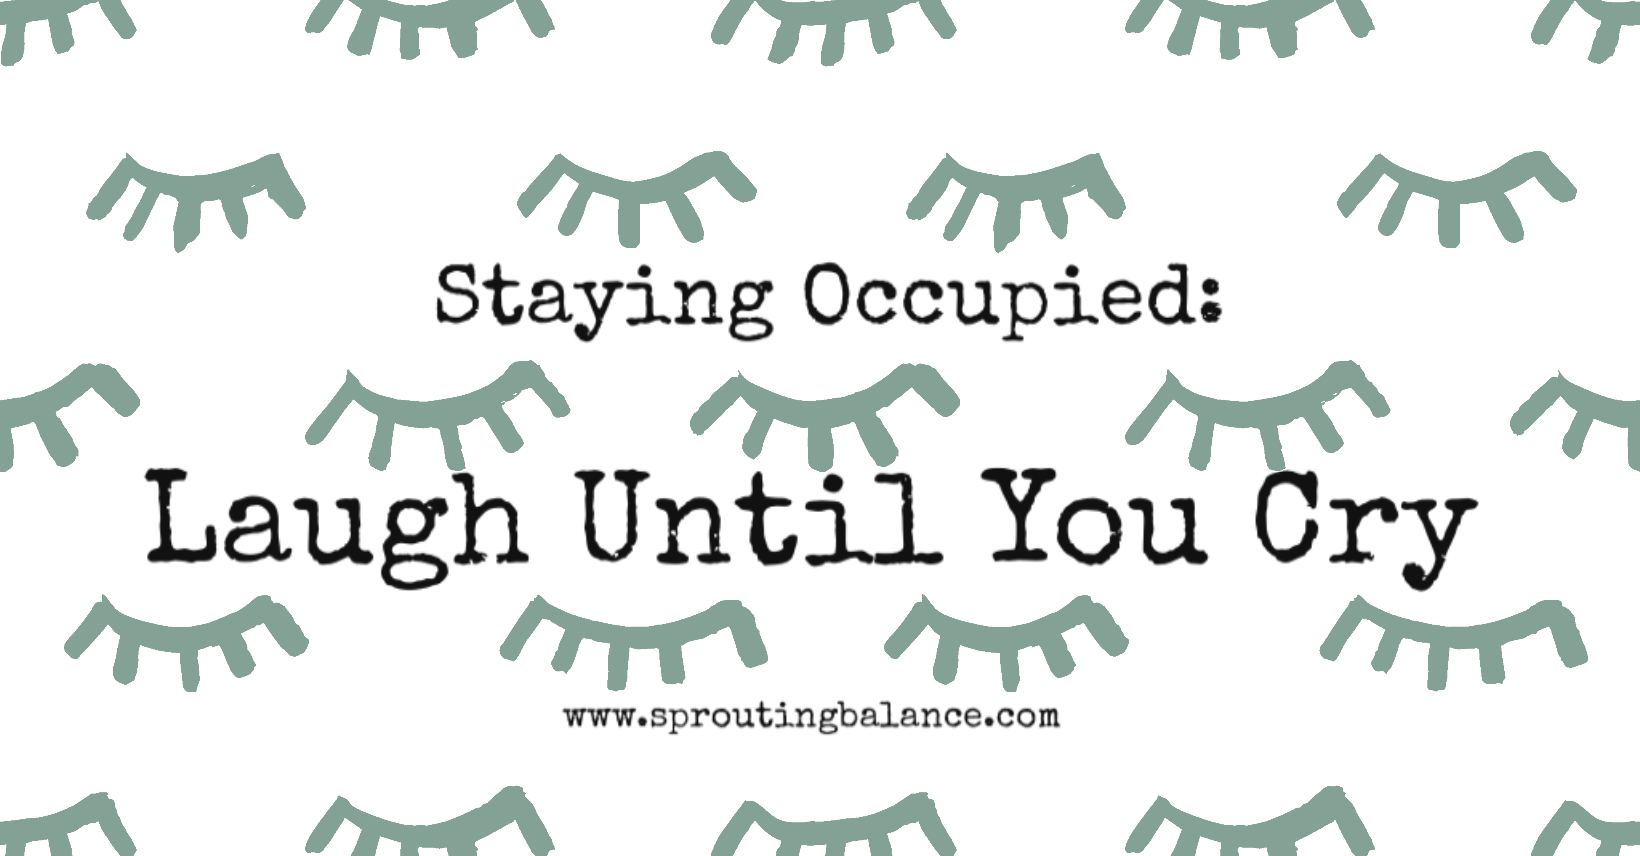 Staying Occupied: Laugh Until You Cry | www.sproutingbalance.com | #stayhealthy #selfisolate #bepositive #getstuffdone #socialdistancing